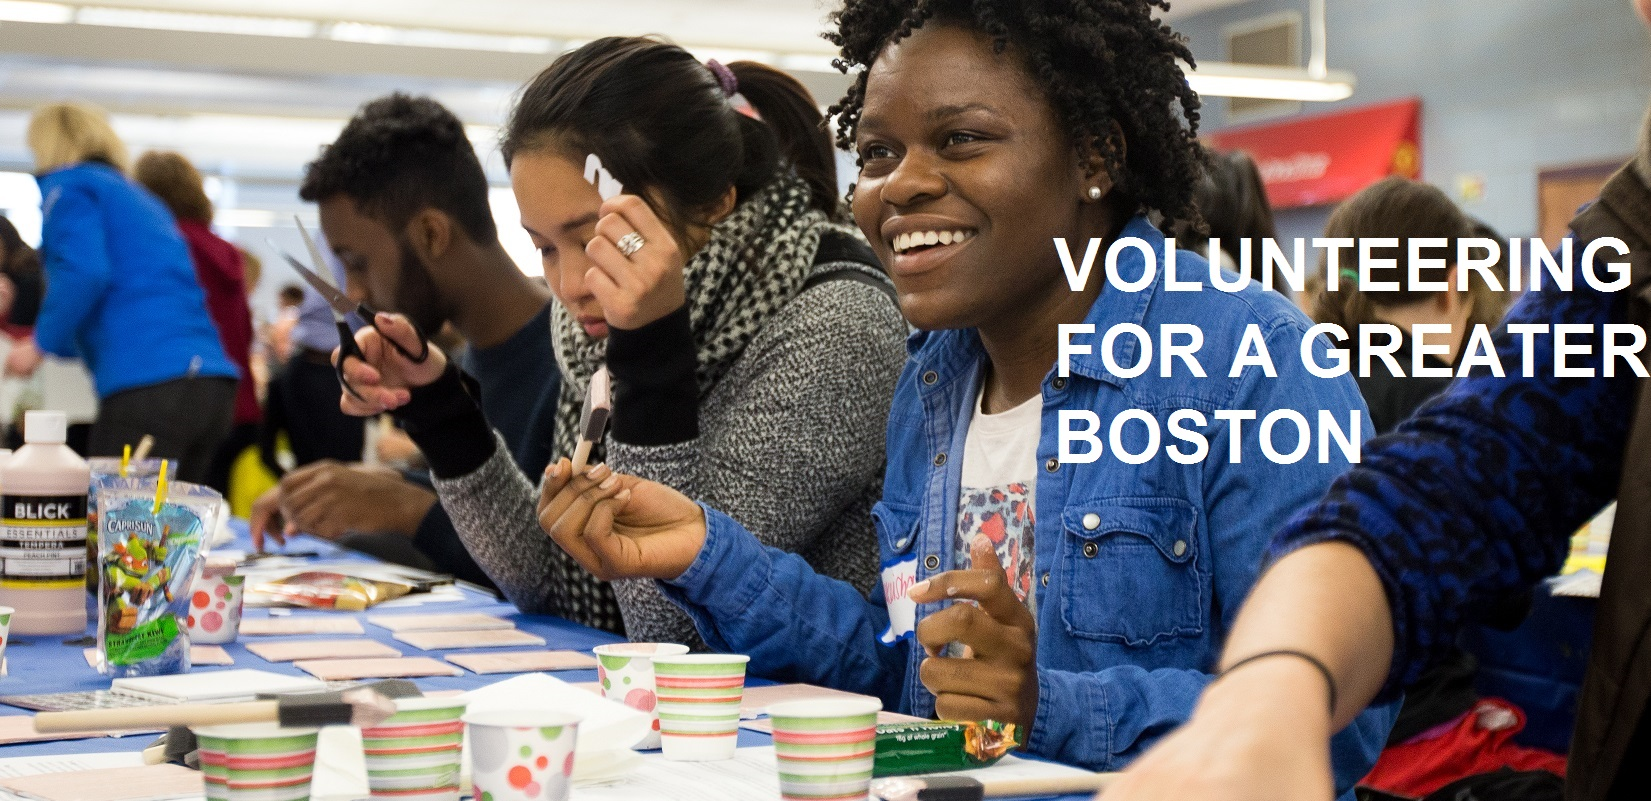 Boston Cares | Volunteering for a Greater Boston